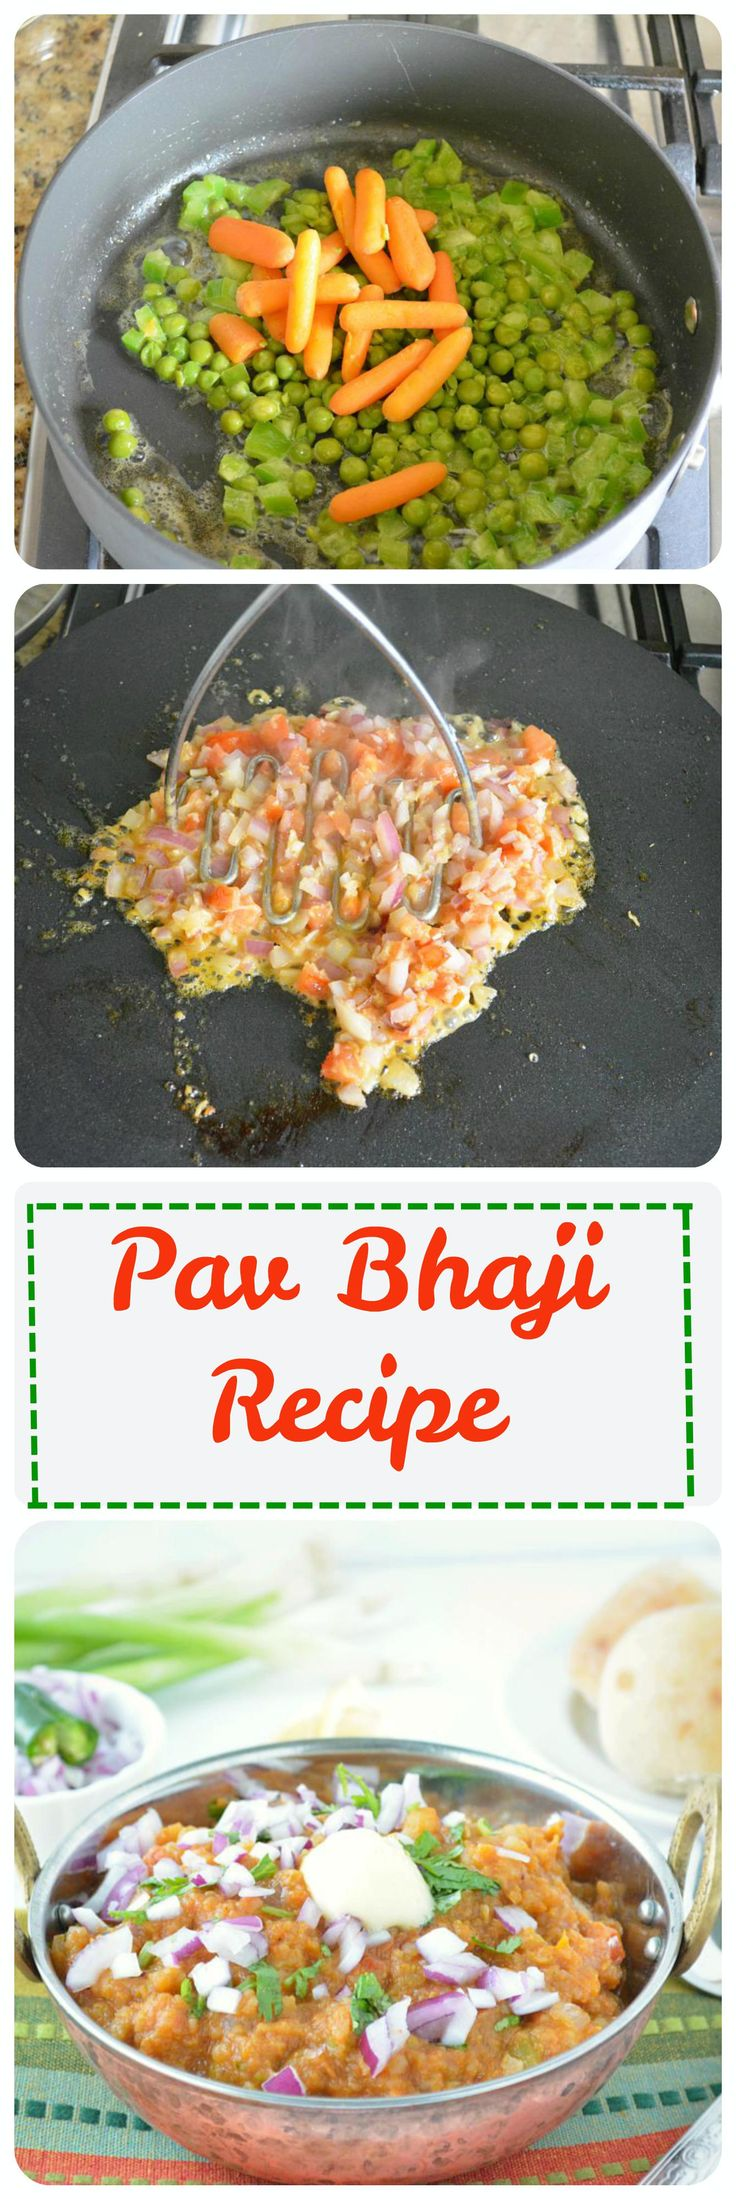 A lip smacking spicy mixed vegetable bhaji straight from the streets of Mumbai, enjoy it with homemade ladi pav. #bhaji #pavbhaji #streetfood #indianfoodcollection